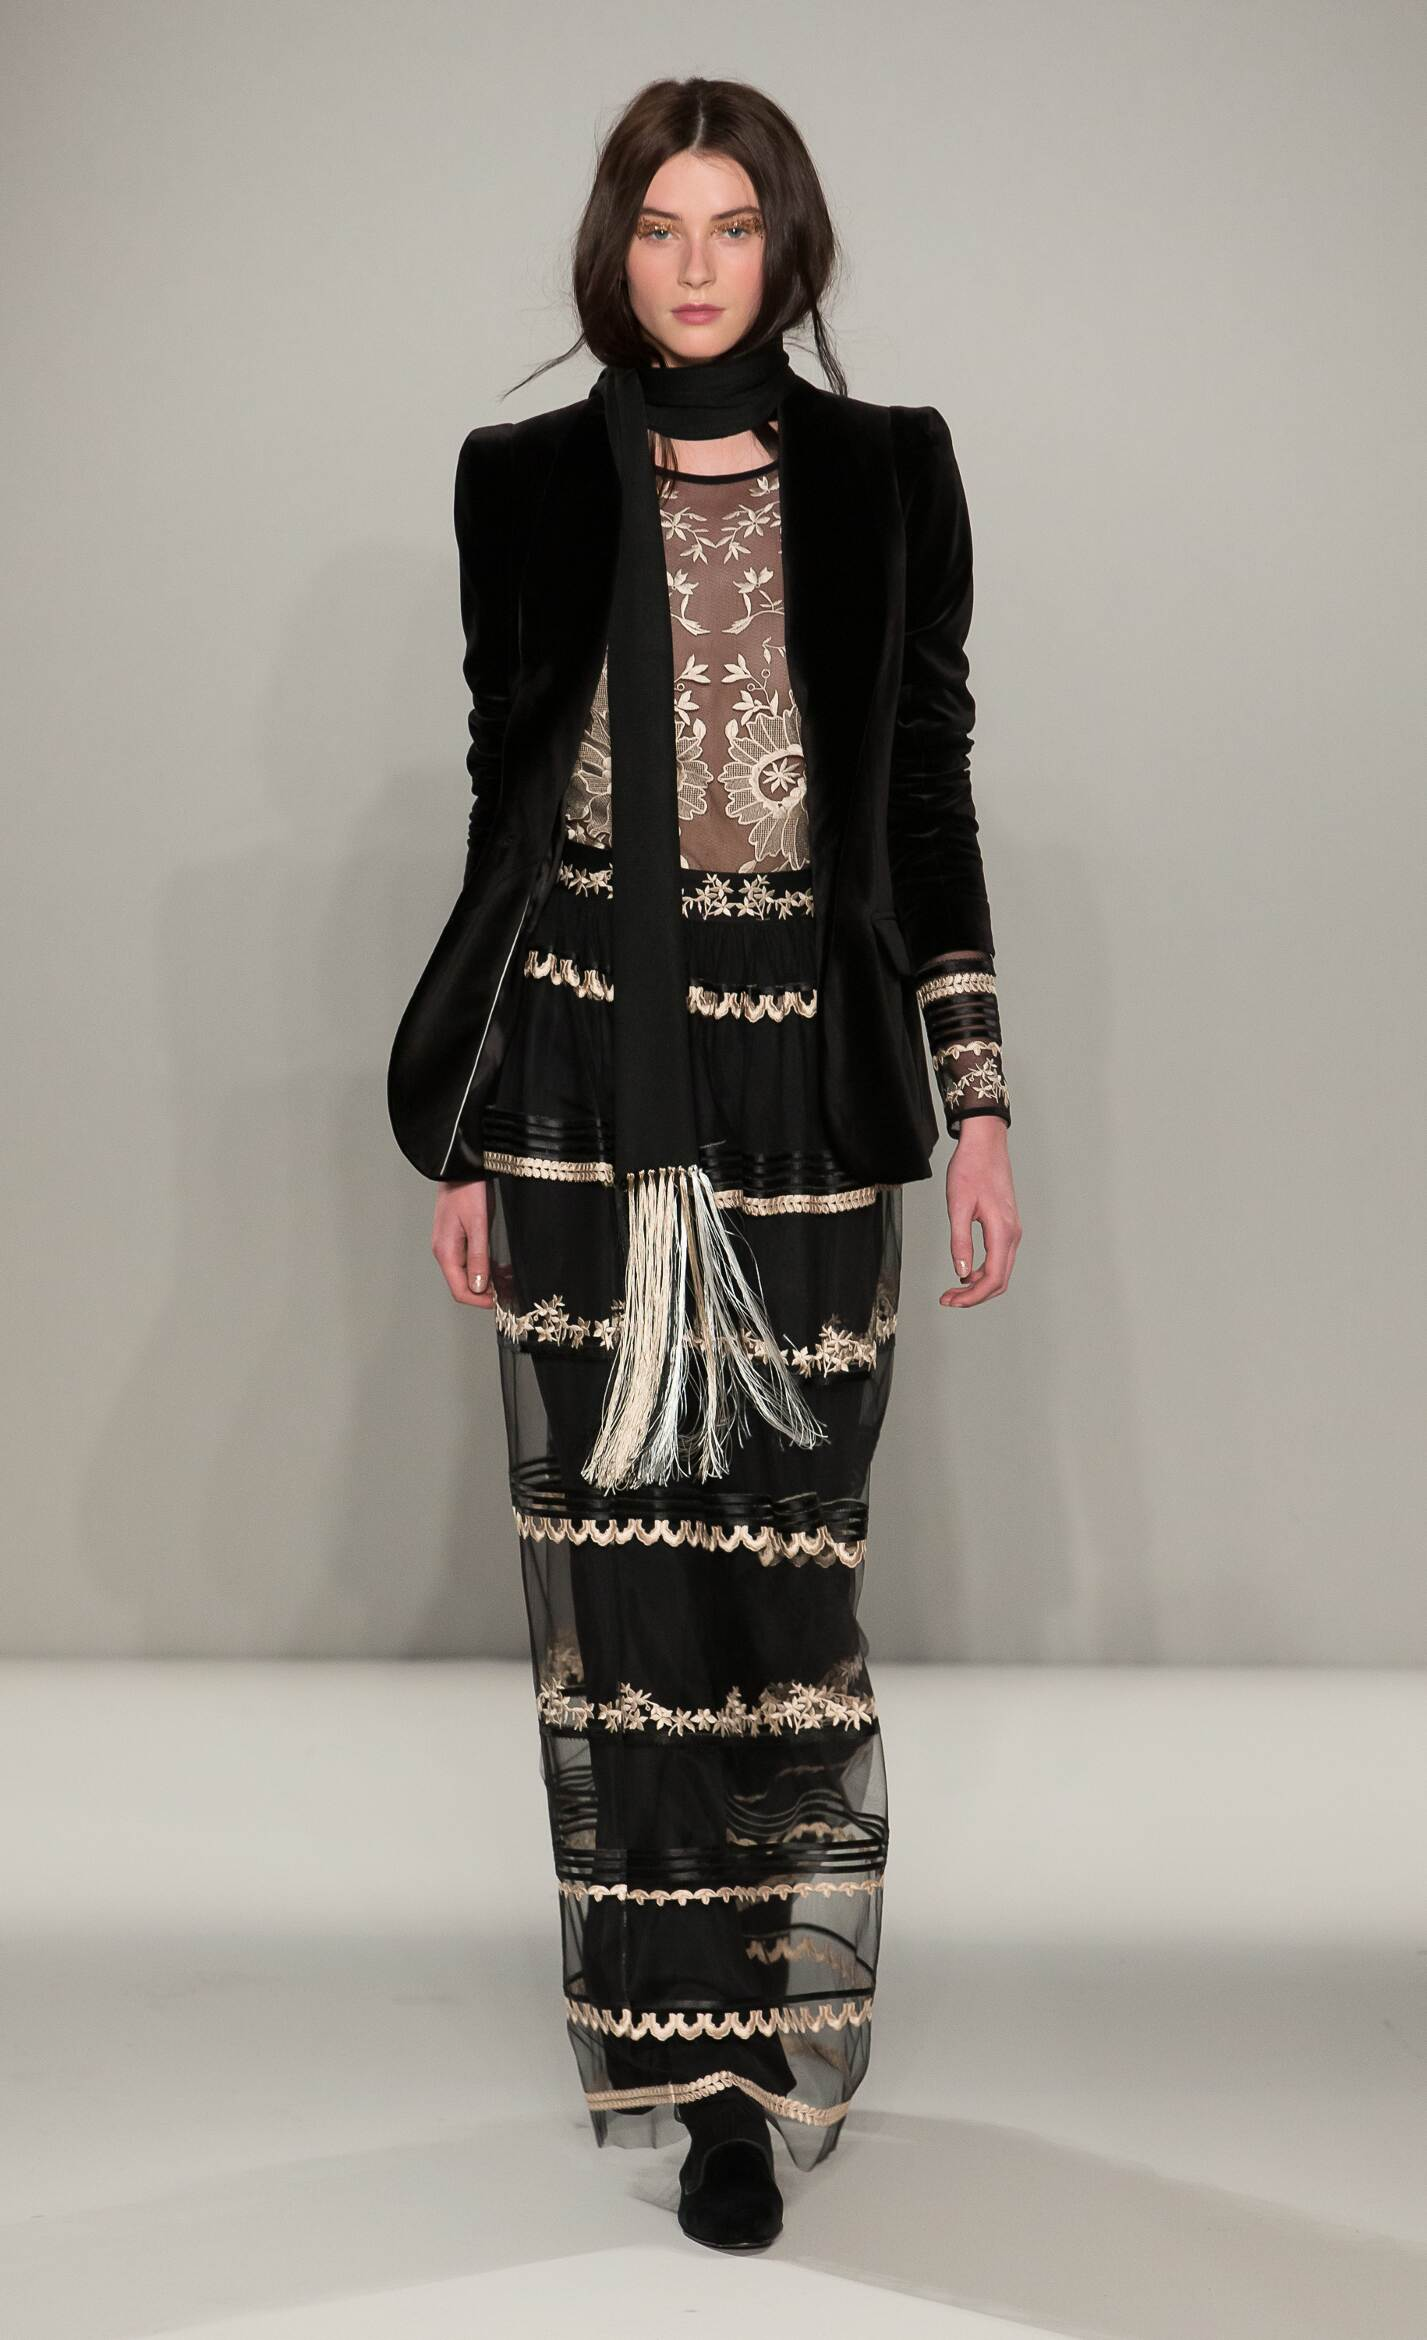 Fashion Model Temperley London Collection Catwalk